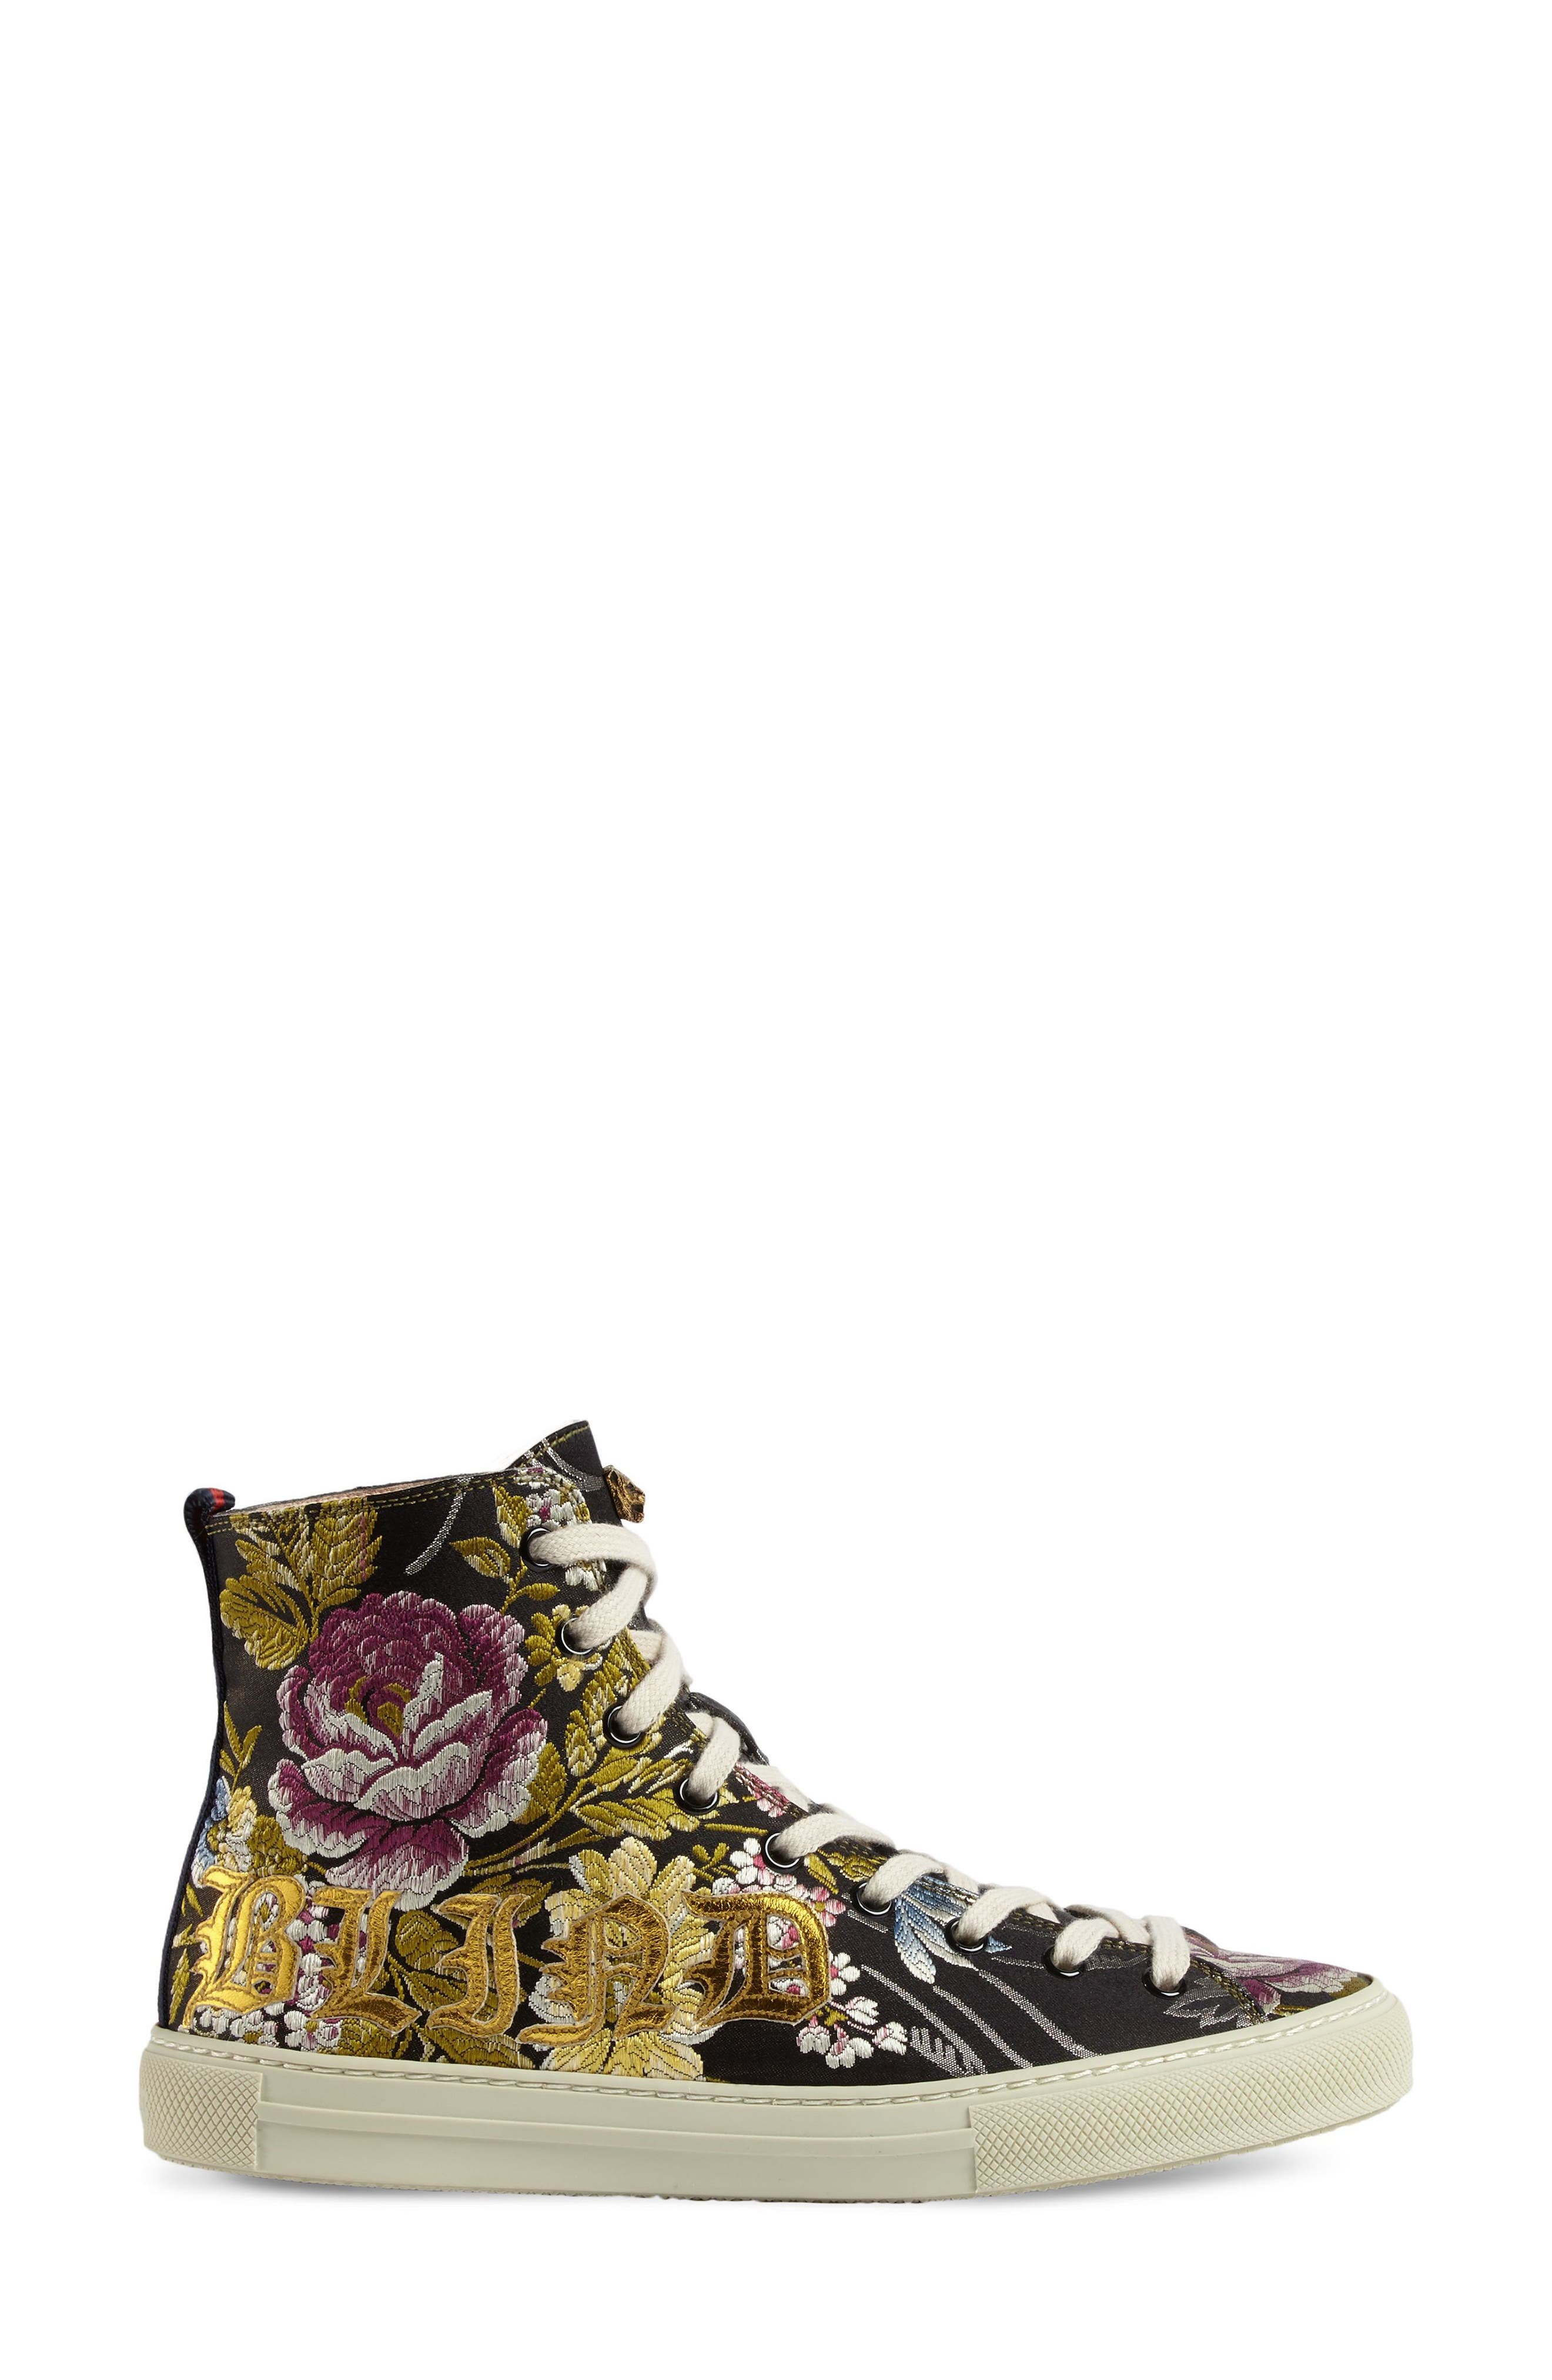 Alternate Image 1 Selected - Gucci Floral High Top Sneaker (Women)